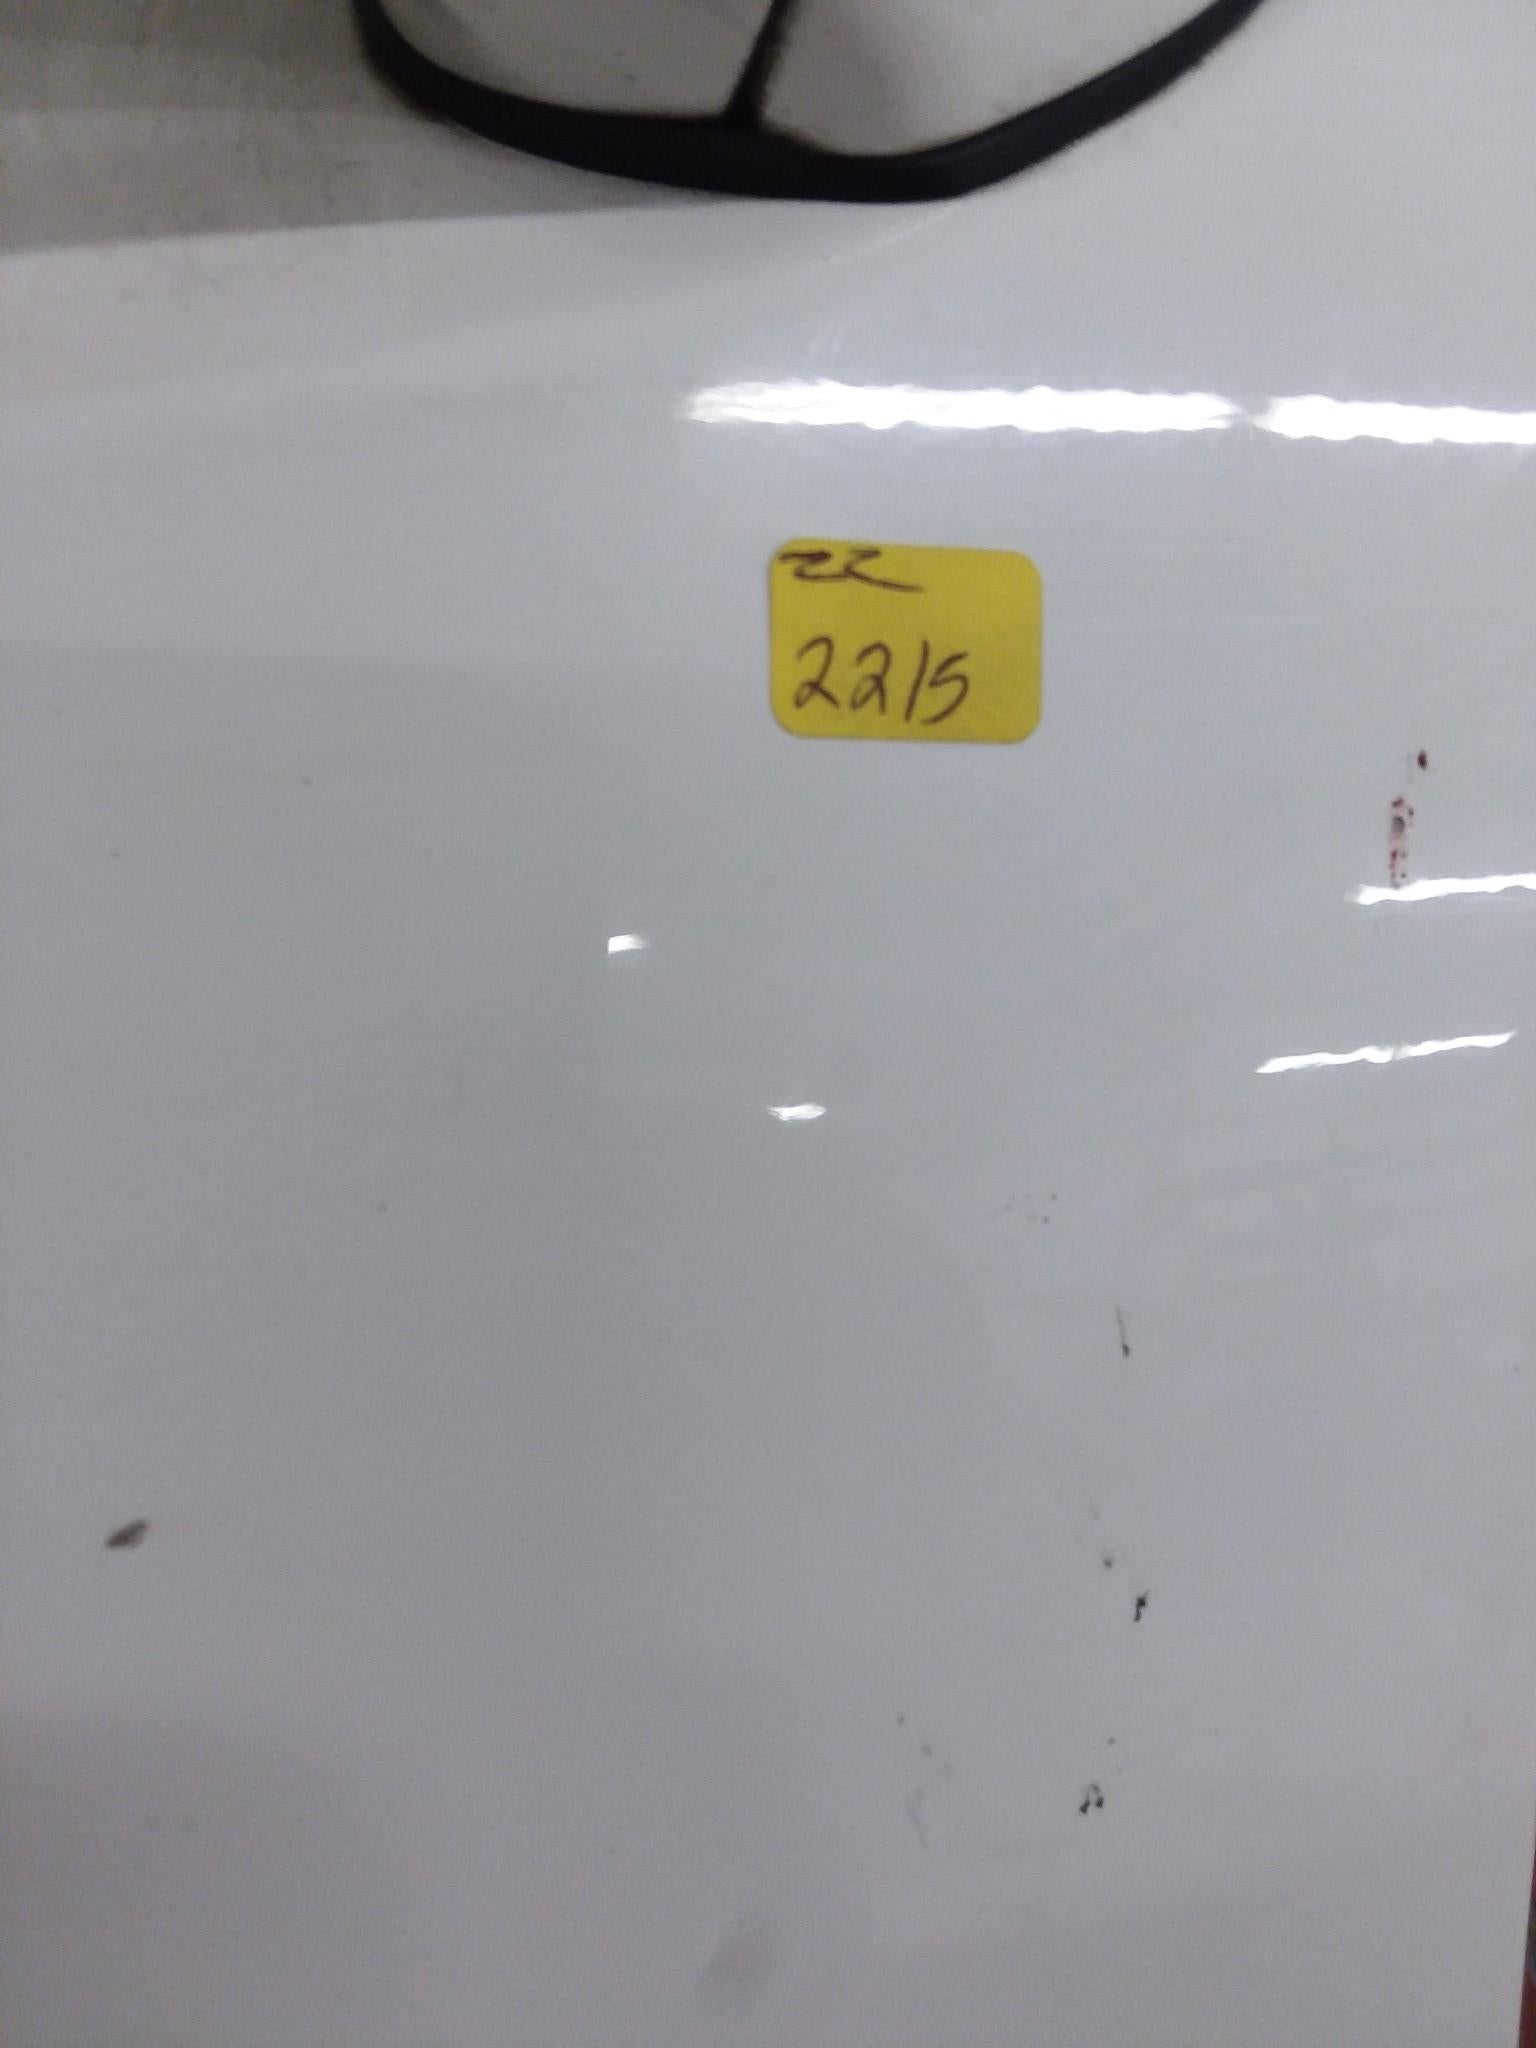 06-11 MERCEDES-BENZ W219 CLS500 CLS550 CLS63 FRONT LEFT SIDE DOOR SHELL WHITE - Click Receive Auto Parts